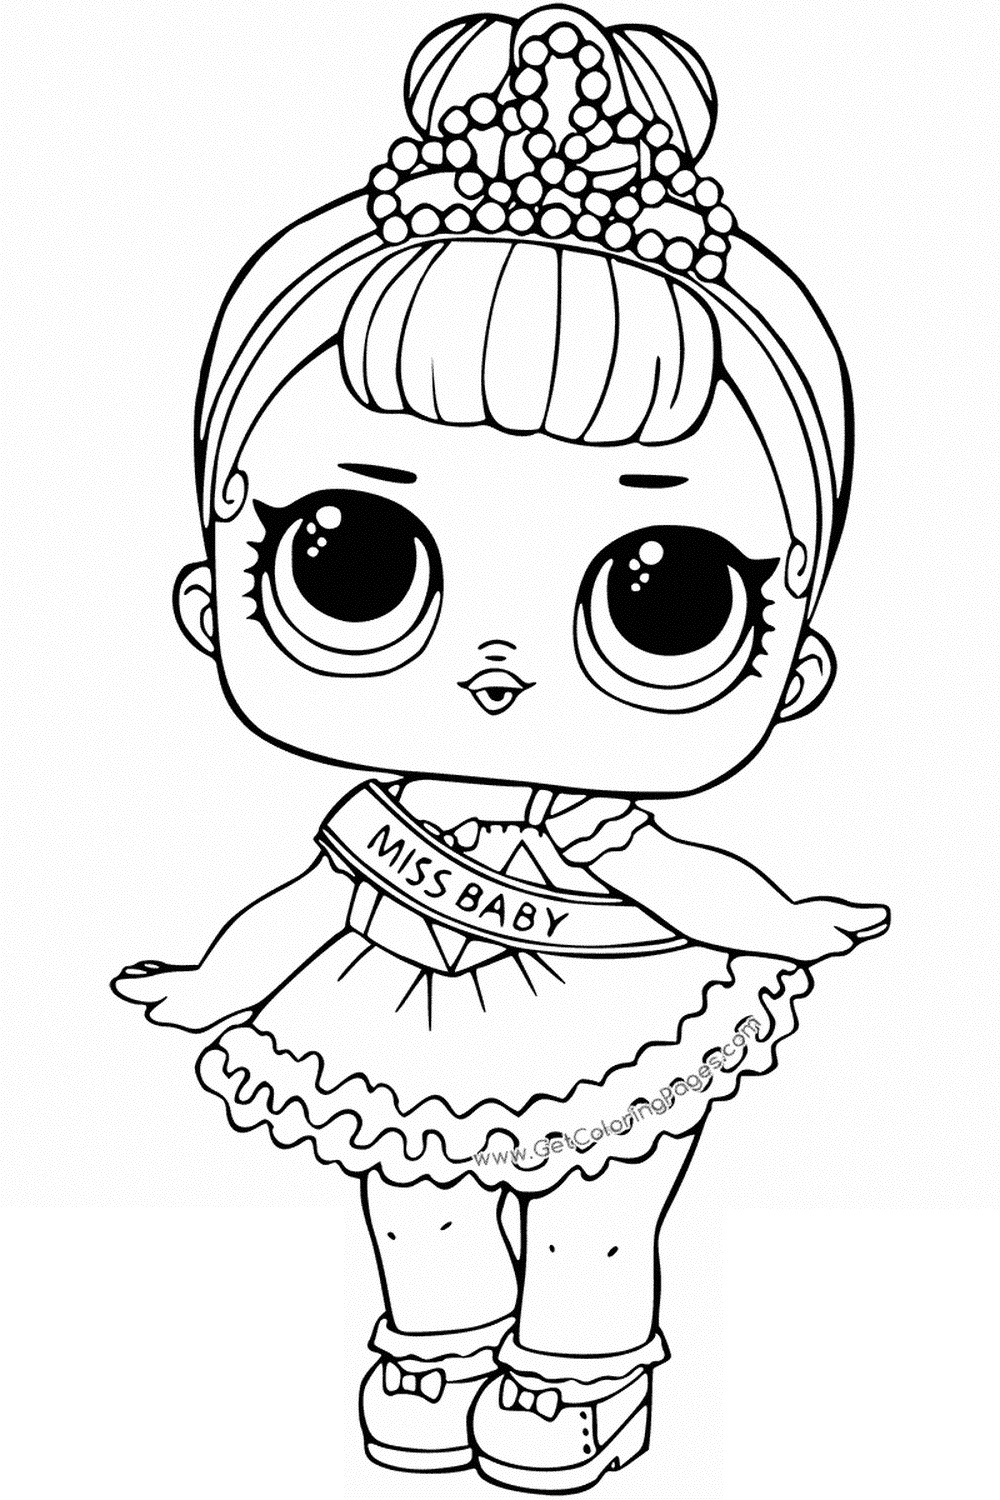 7200 Top Coloring Sheets Of Lol Images & Pictures In HD